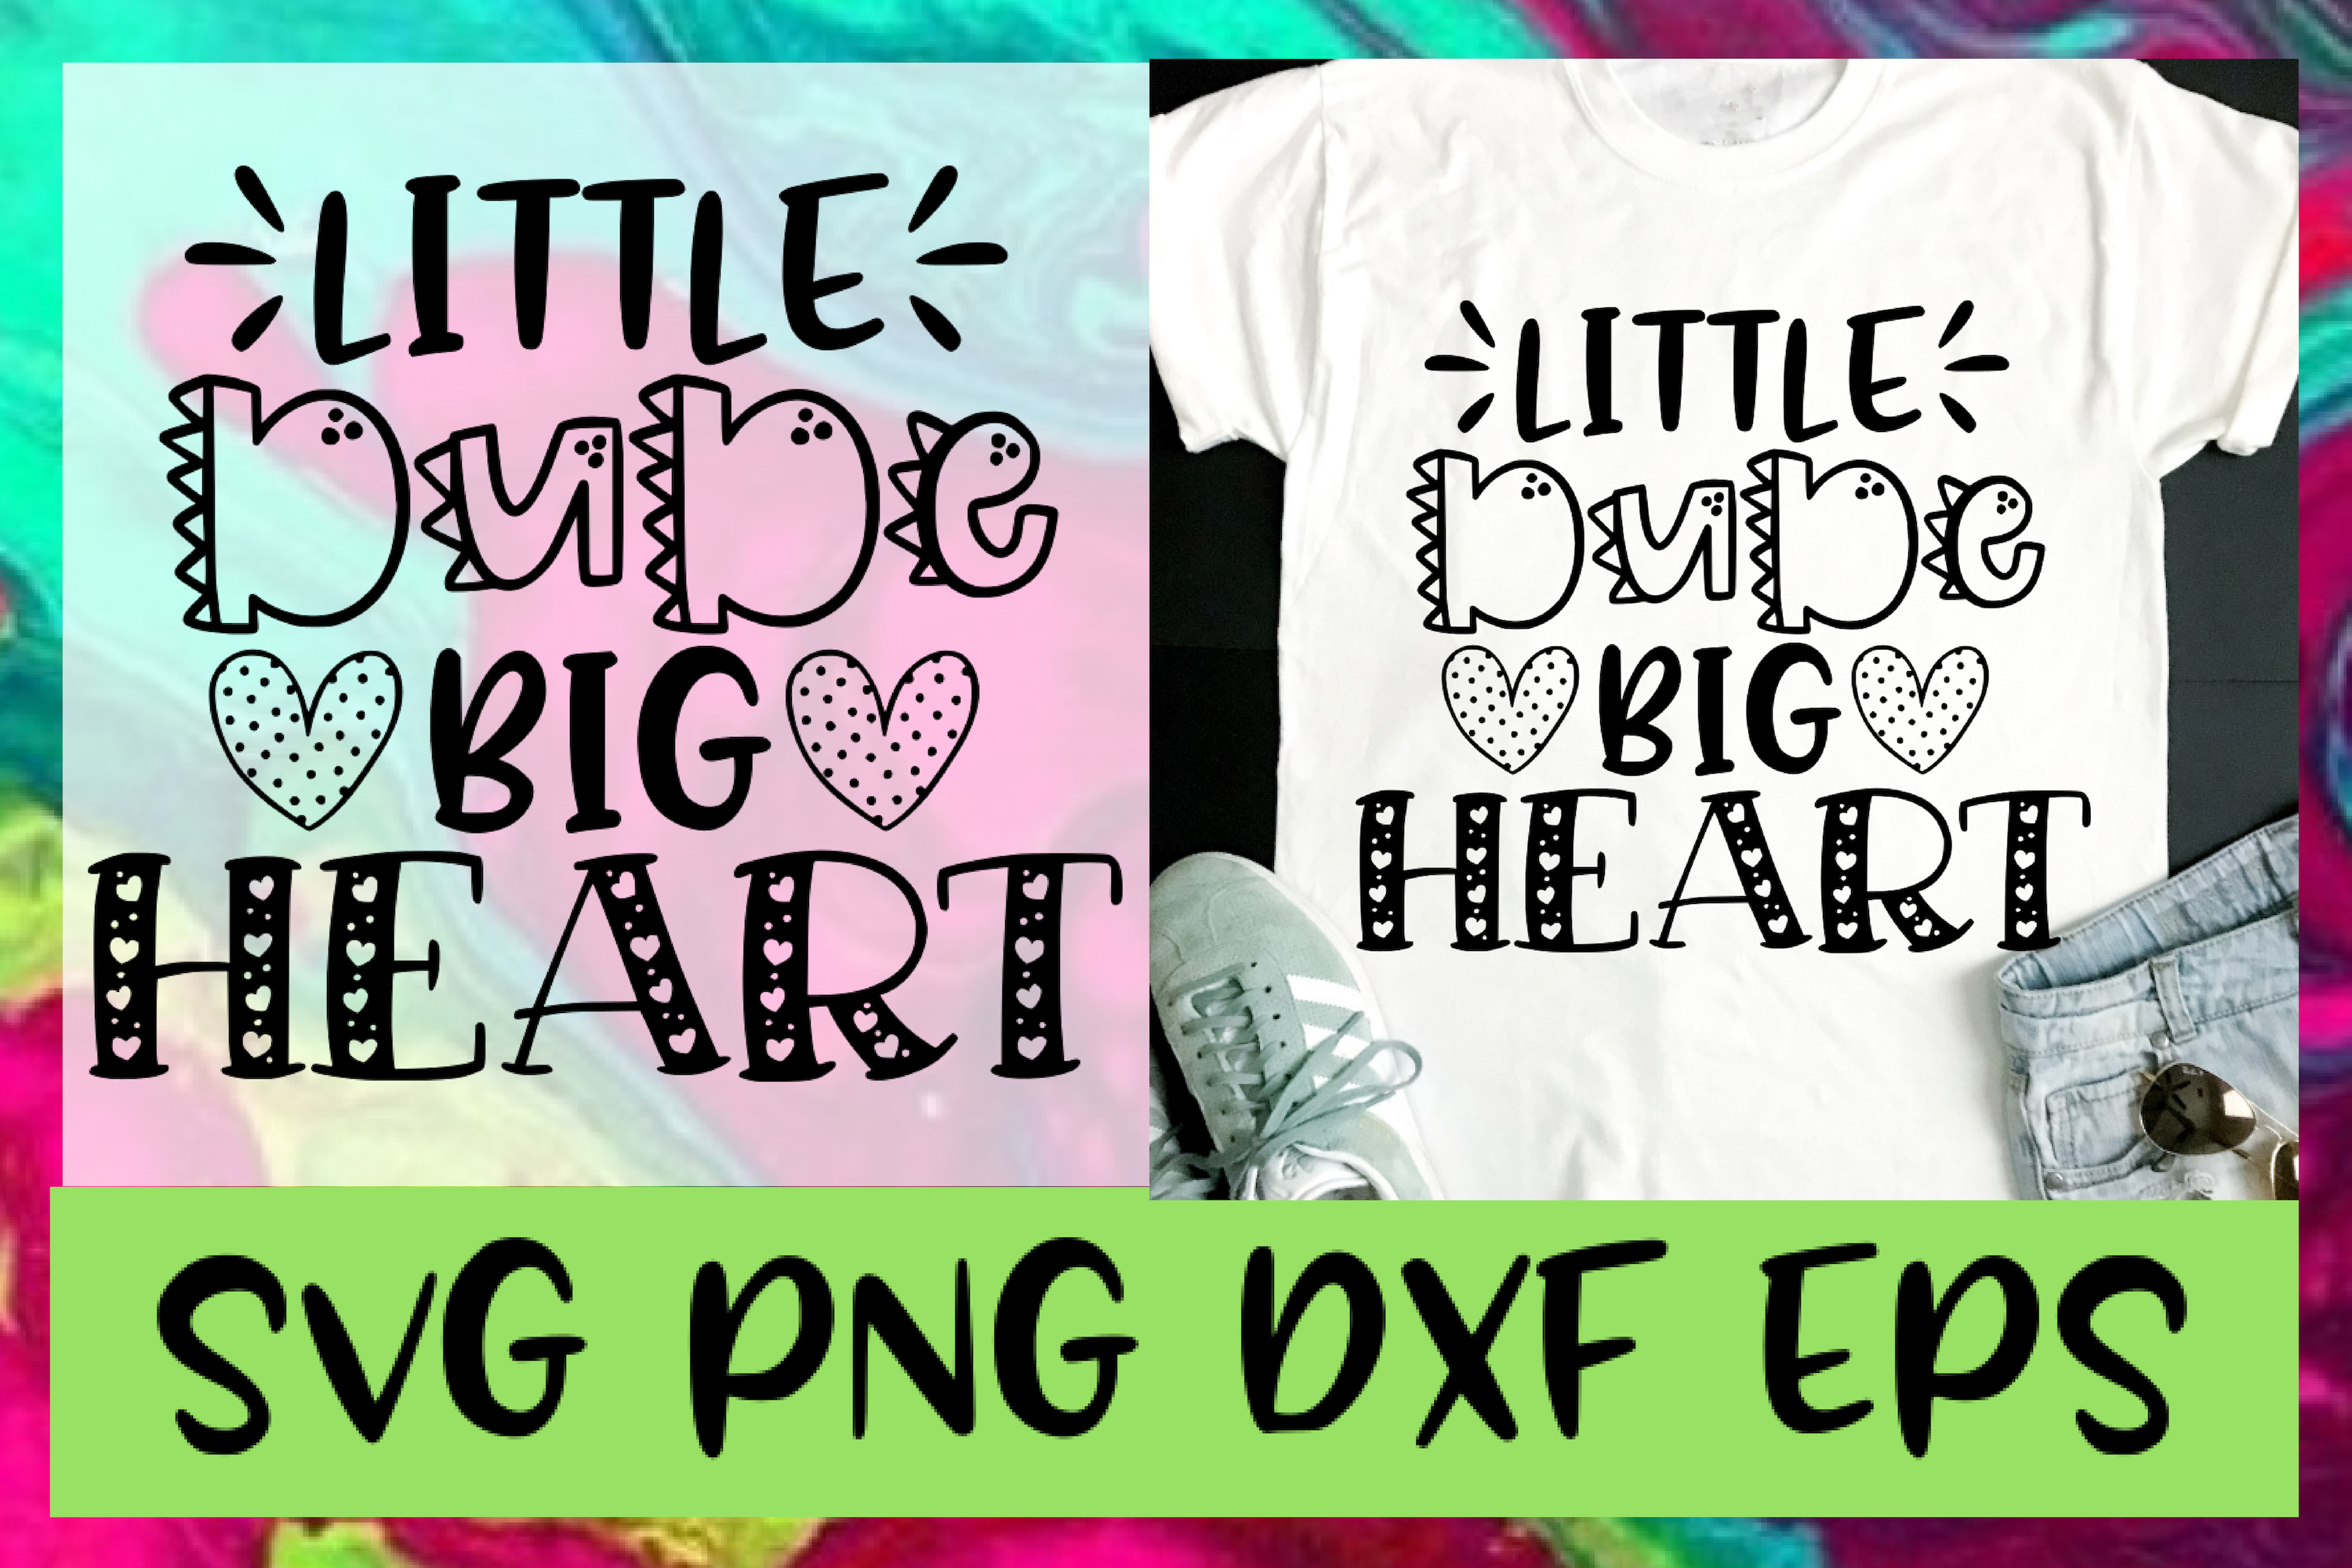 Little Dude Big Heart SVG PNG DXF & EPS Design Files example image 1